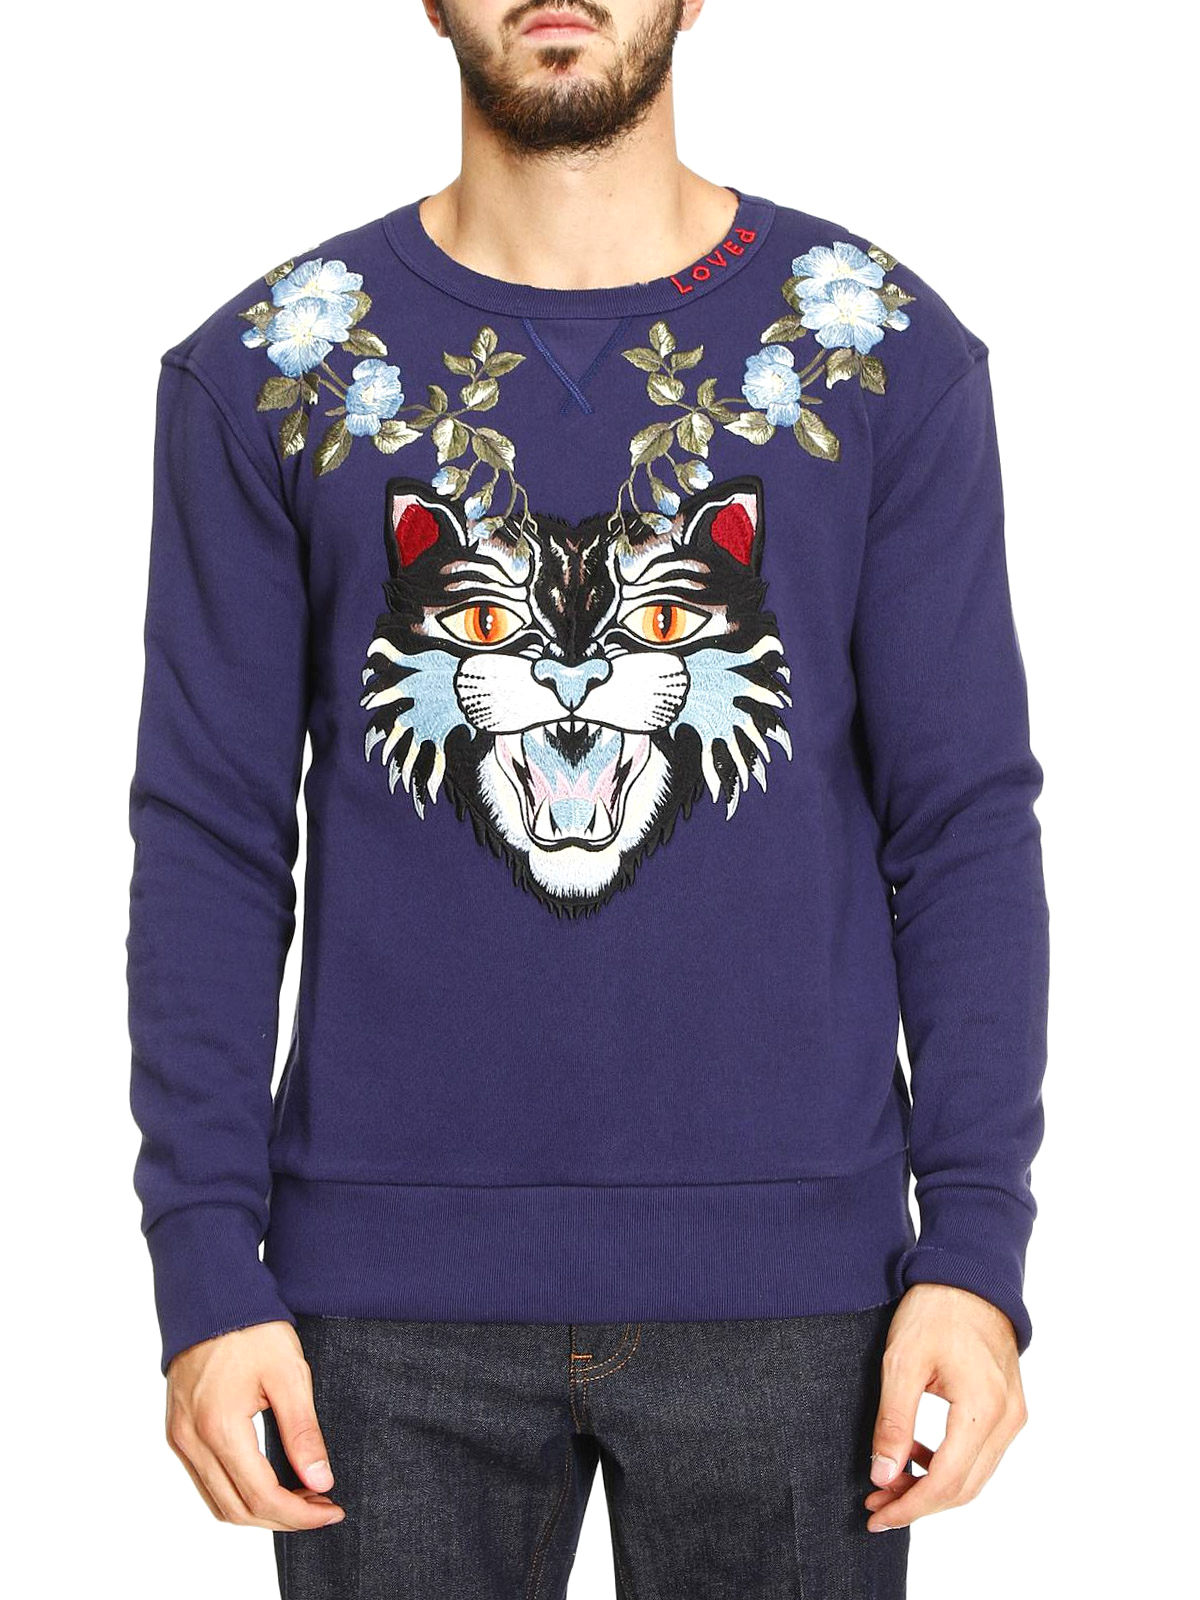 177771c6381 GUCCI  Sweatshirts   Sweaters online - Angry Cat and floral sweatshirt